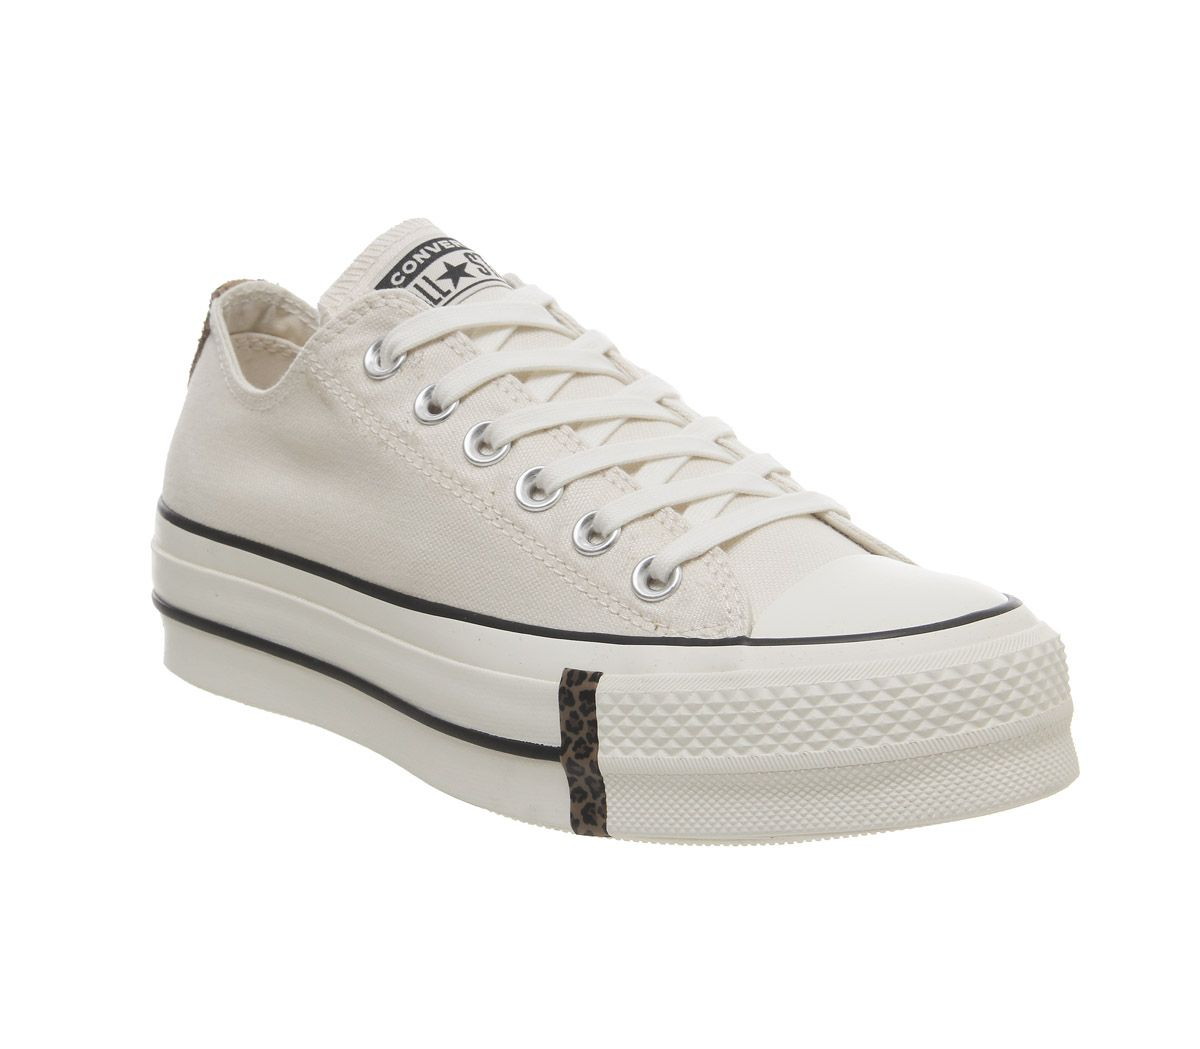 8e166d1ef13d10 Converse All Star Lift Low Leather Natural Ivory Egret Animal ...